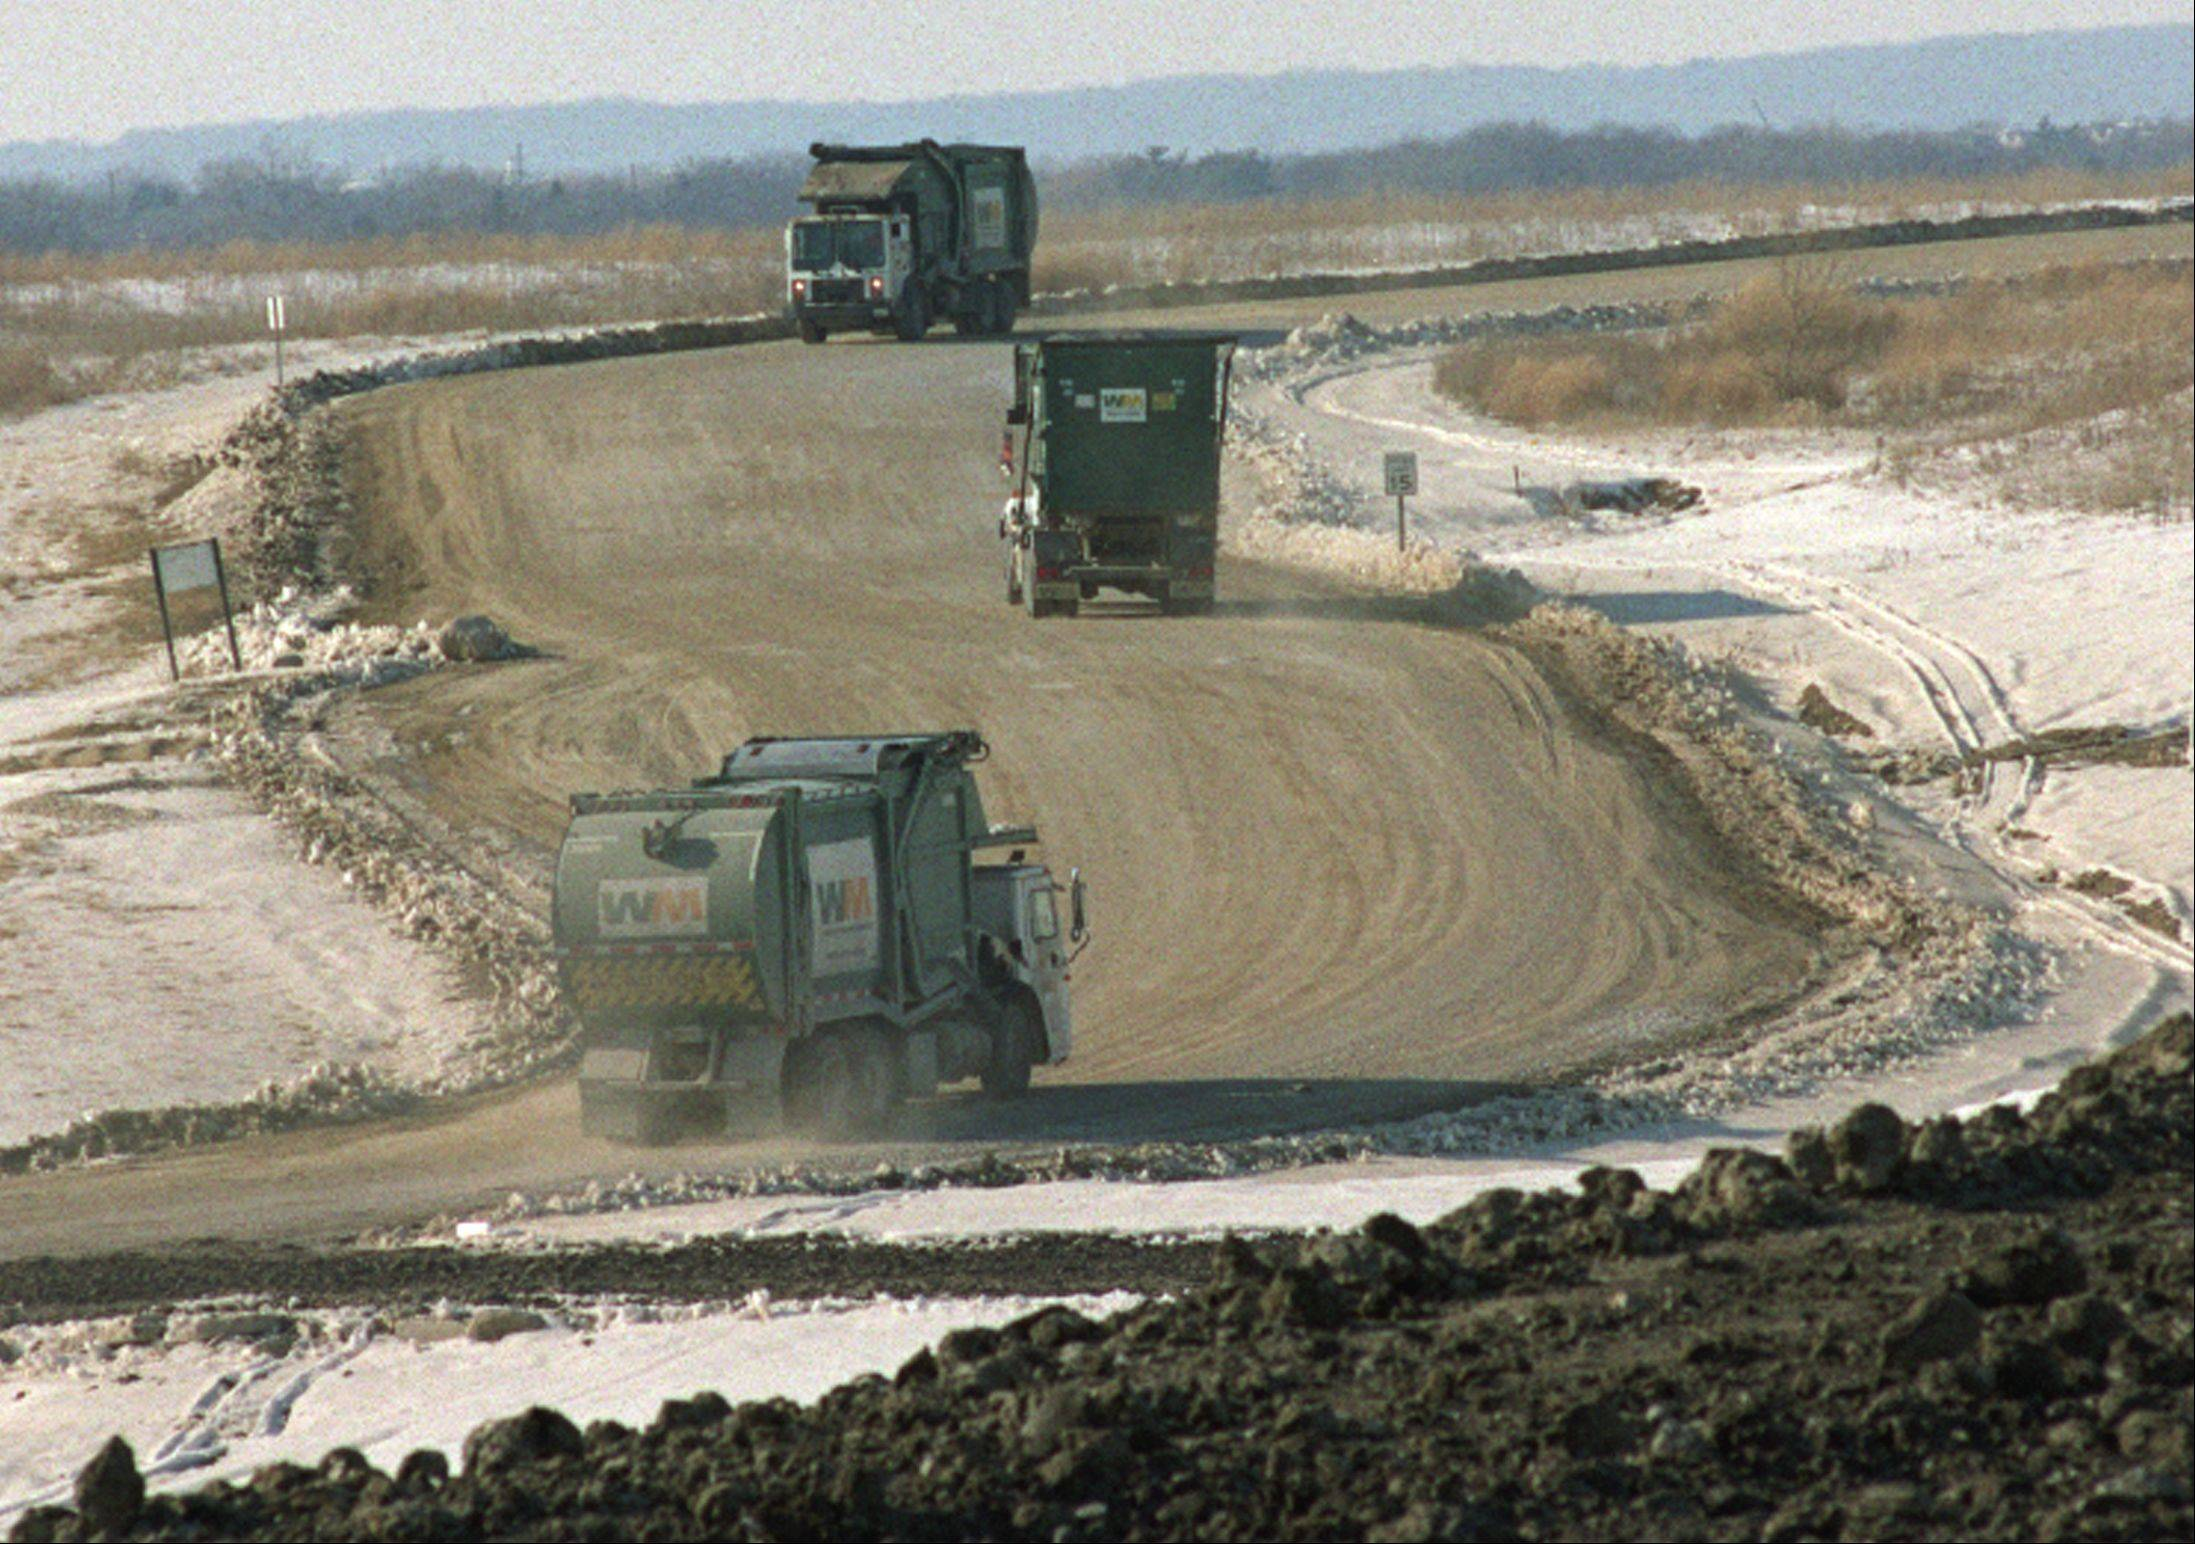 Kane County may enter dirt business at Settlers Hill